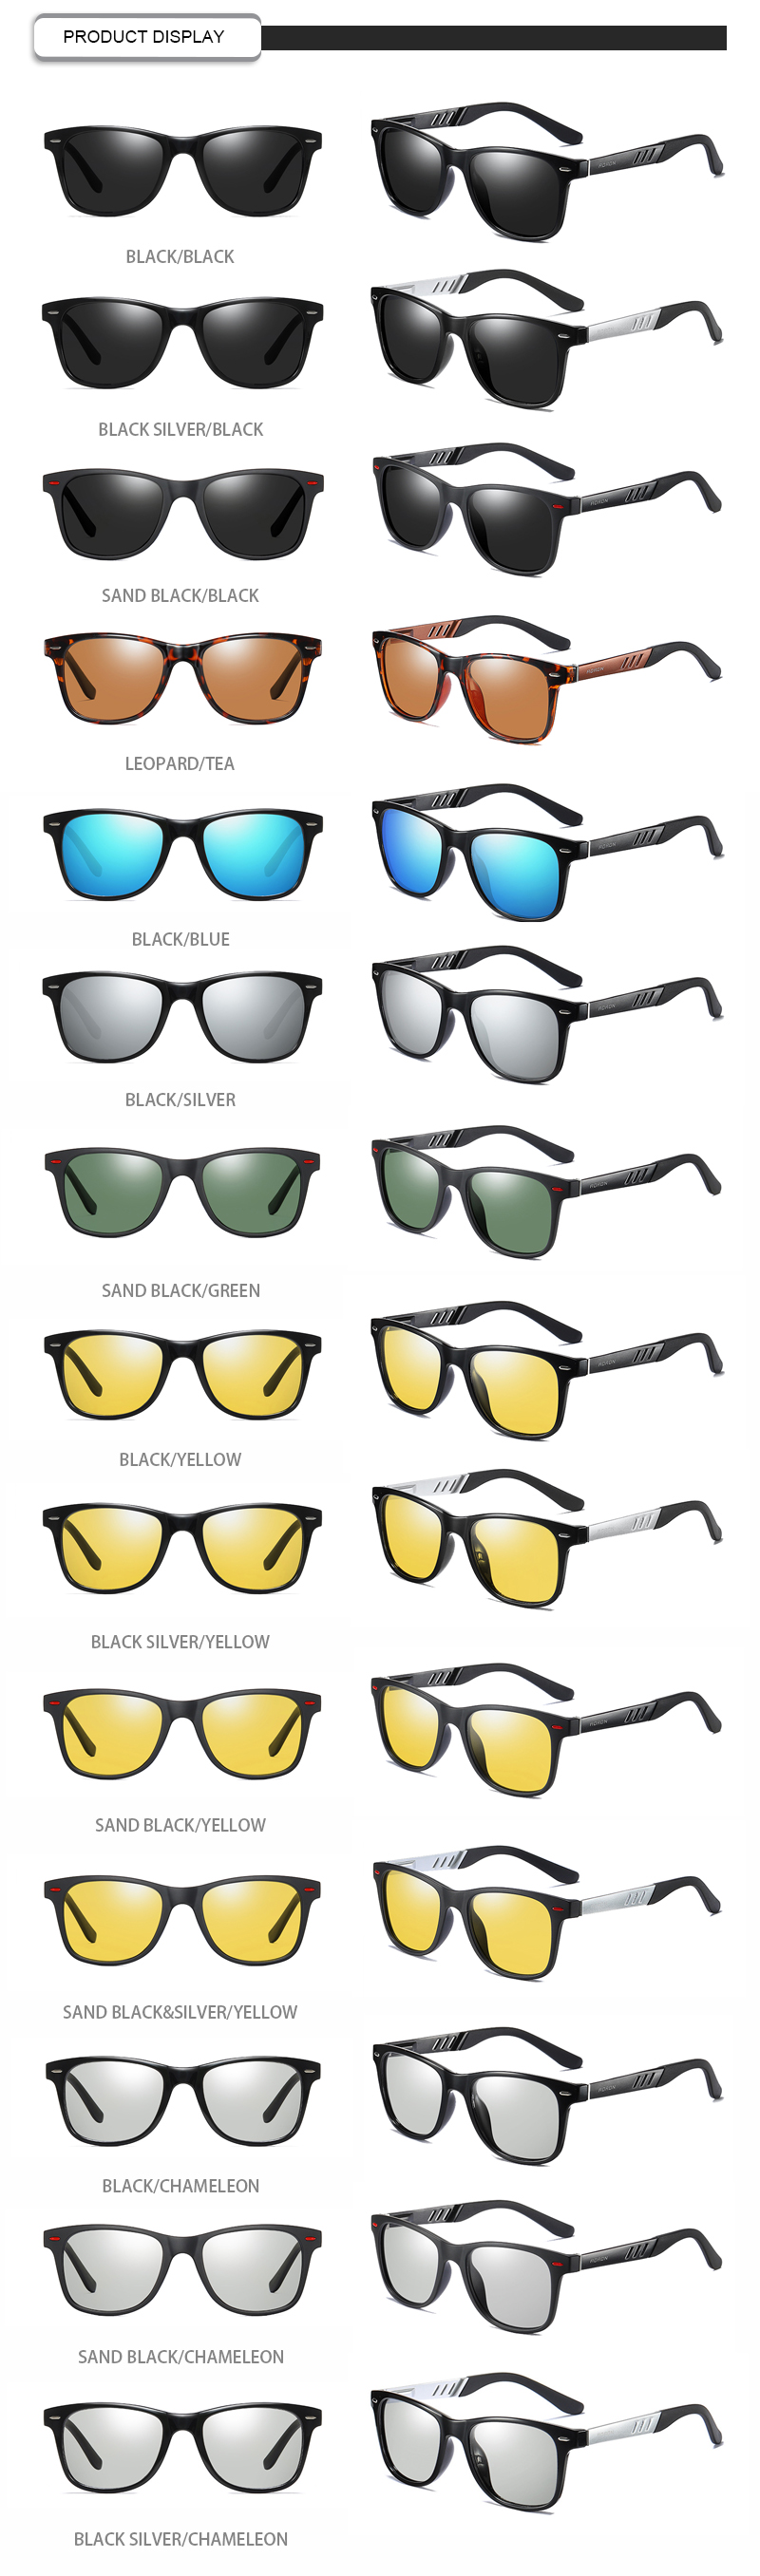 Fuqian expensive sunglasses company for running-13